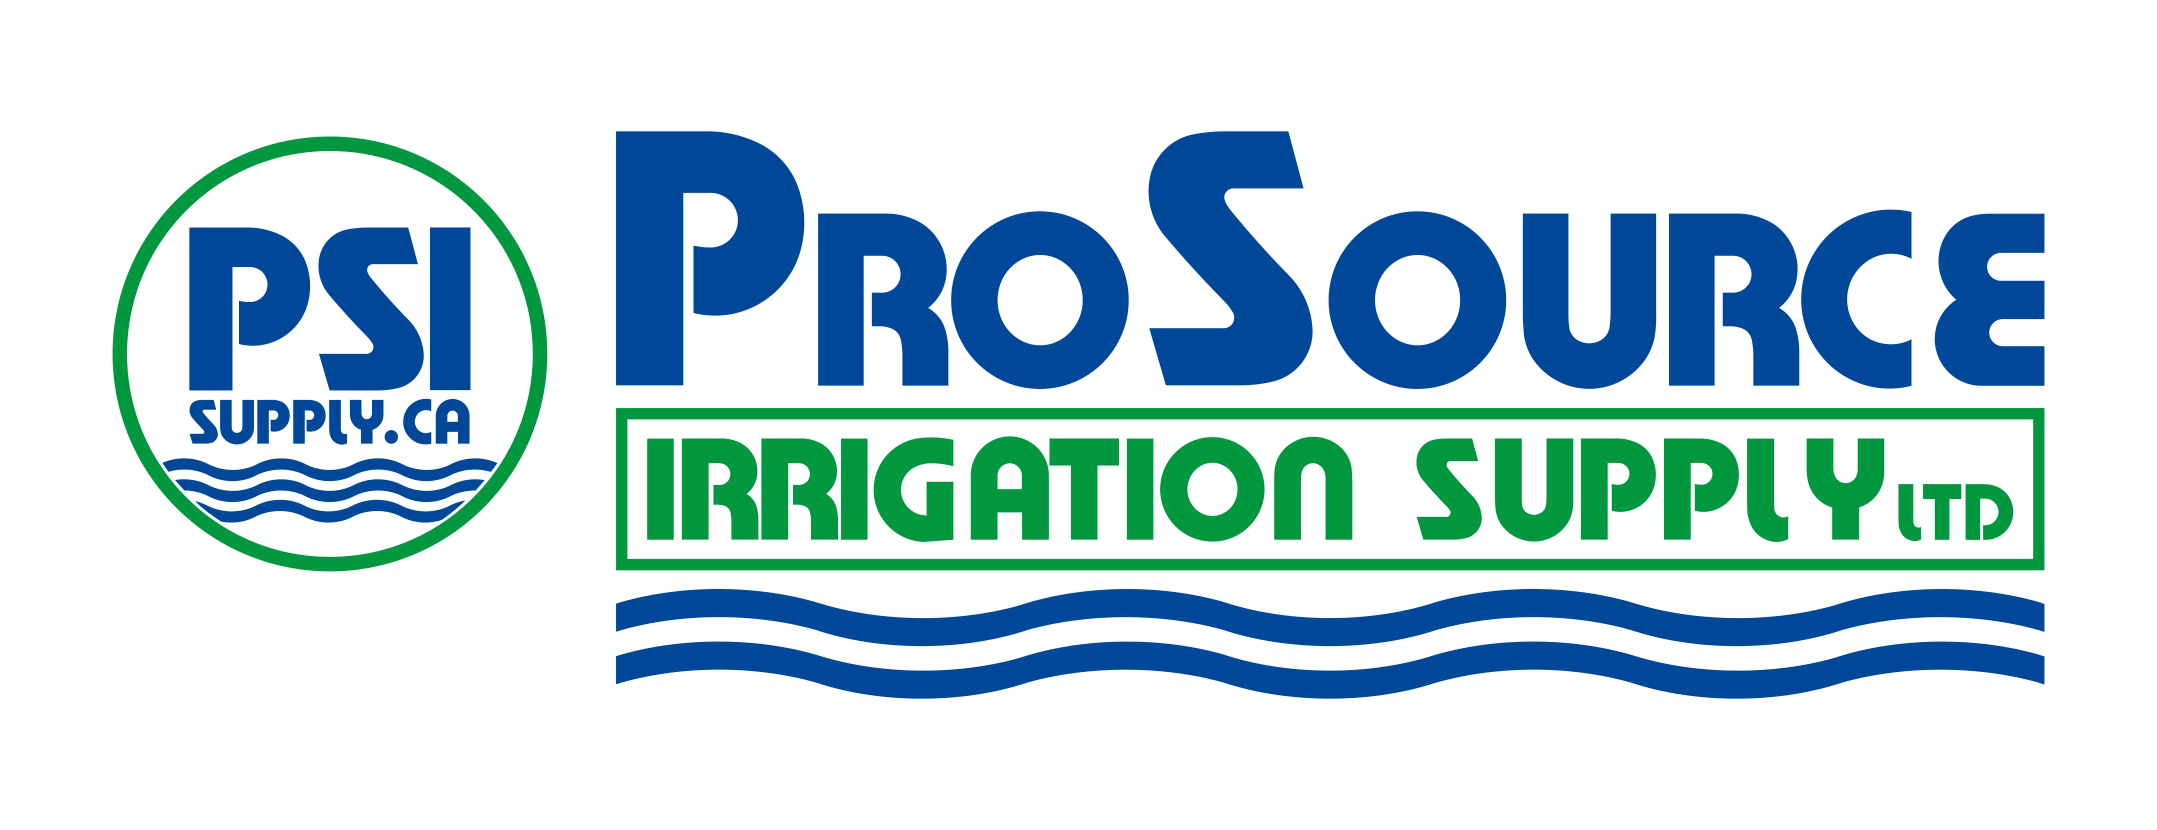 okanagan water management and conservation prosource